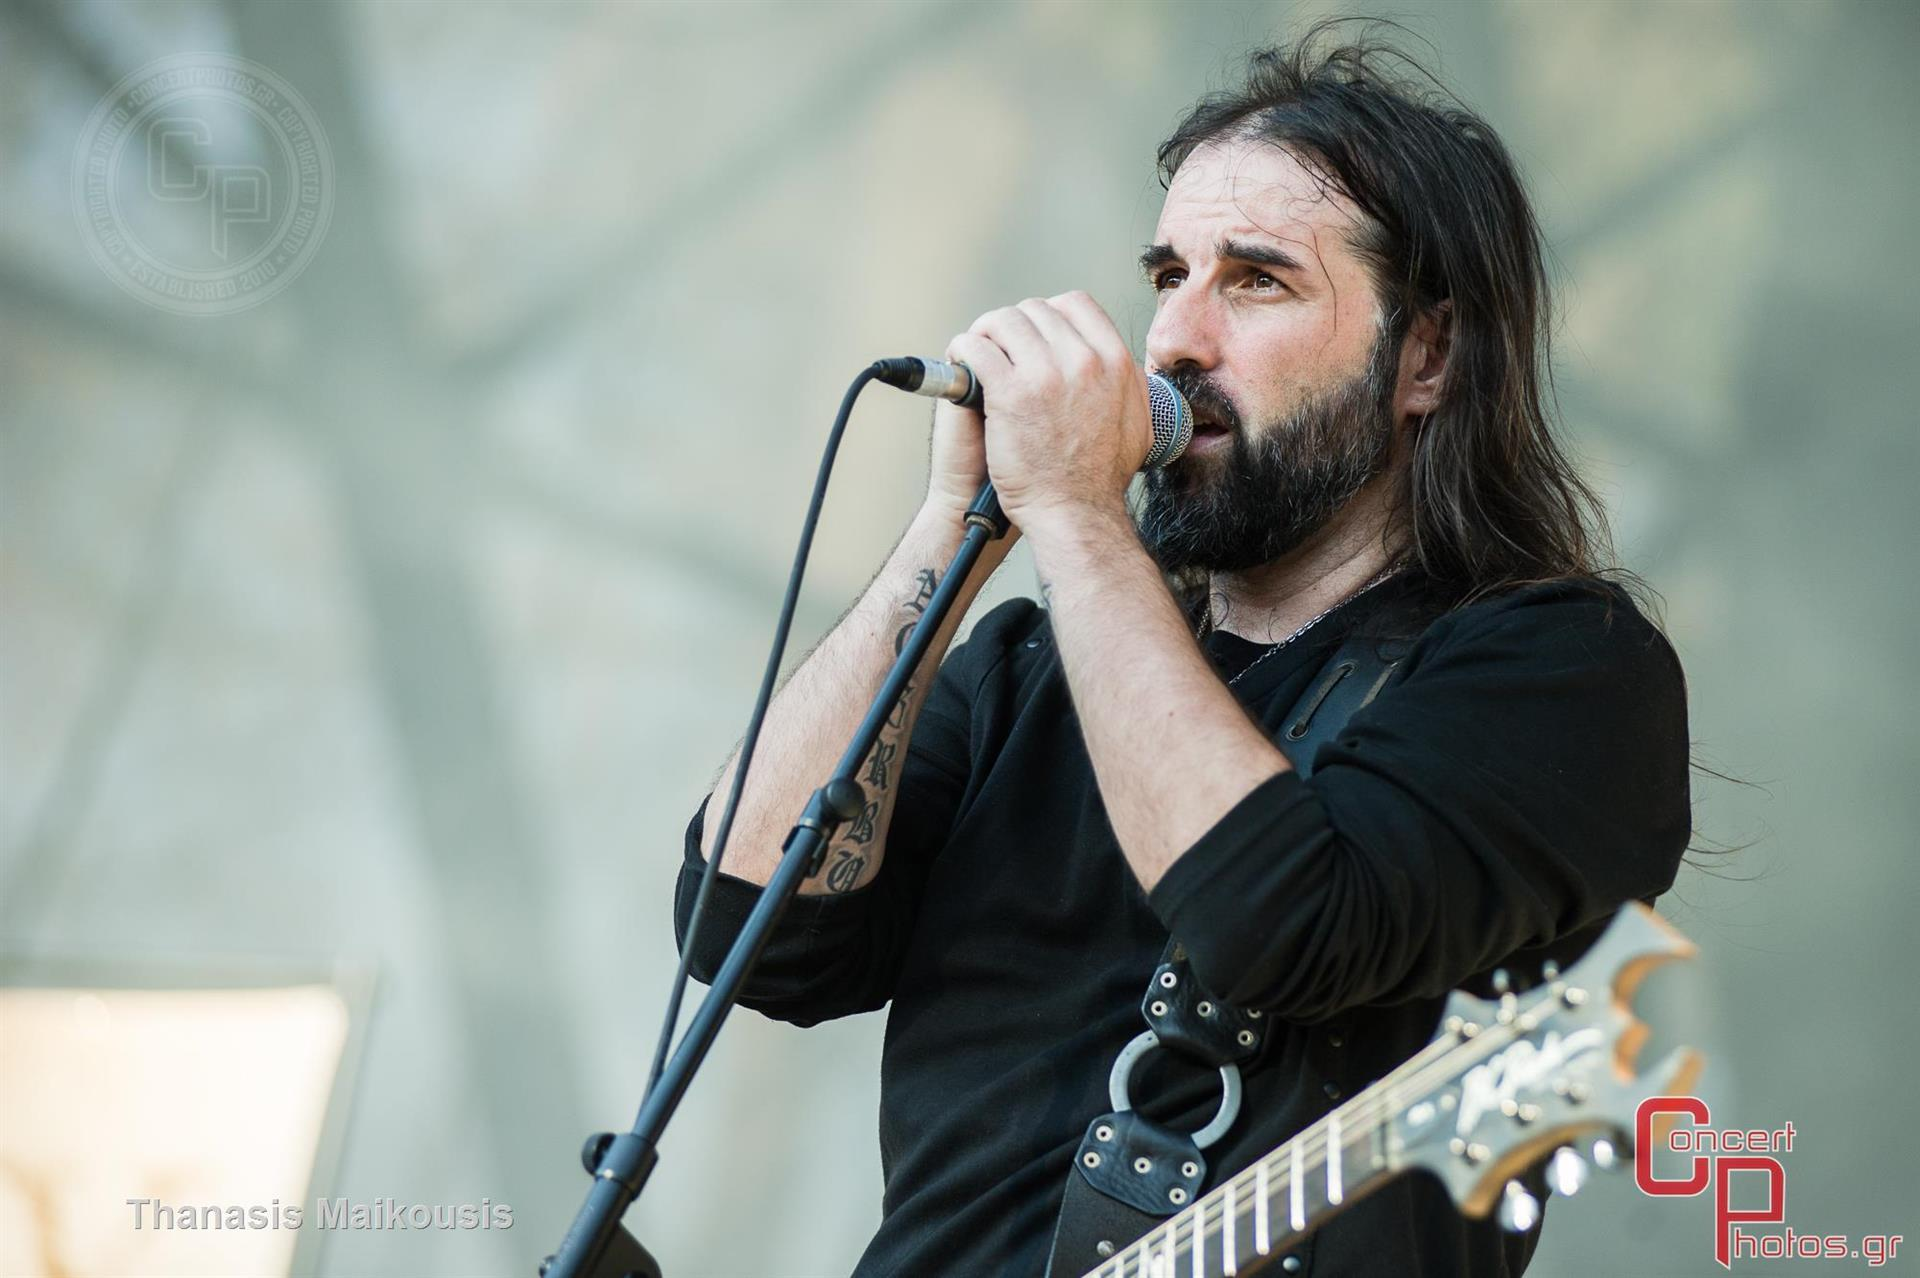 Rockwave 2015 - Day 3-Rockwave 2015 - Day 3 photographer: Thanasis Maikousis - ConcertPhotos - 20150704_1815_46